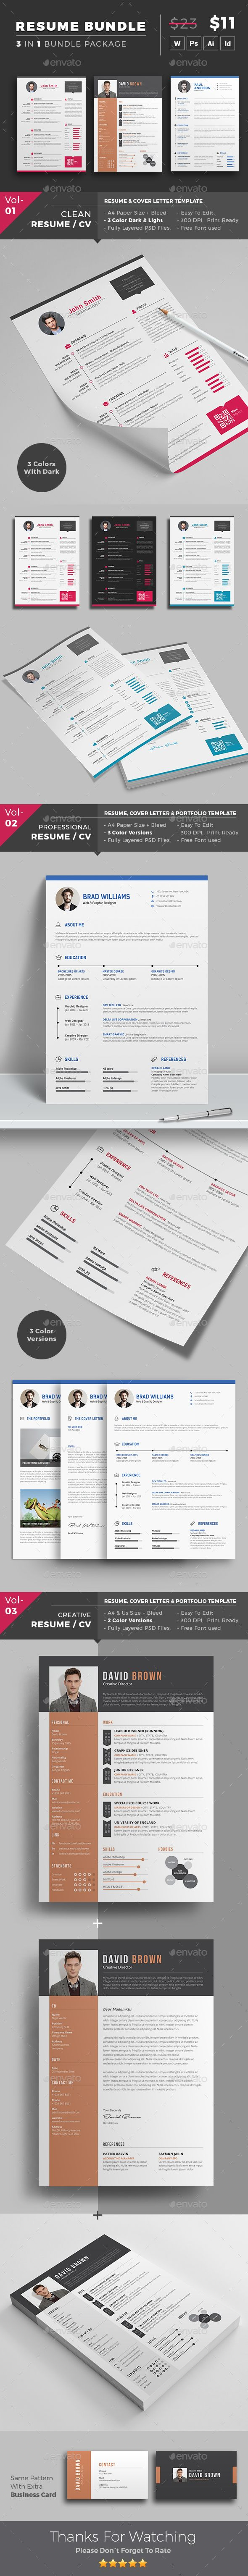 Resume by themedevisers Professional Resume Word Template Bundle. Elegant page designs are easy to use and customize, so you can quickly tailor-make your